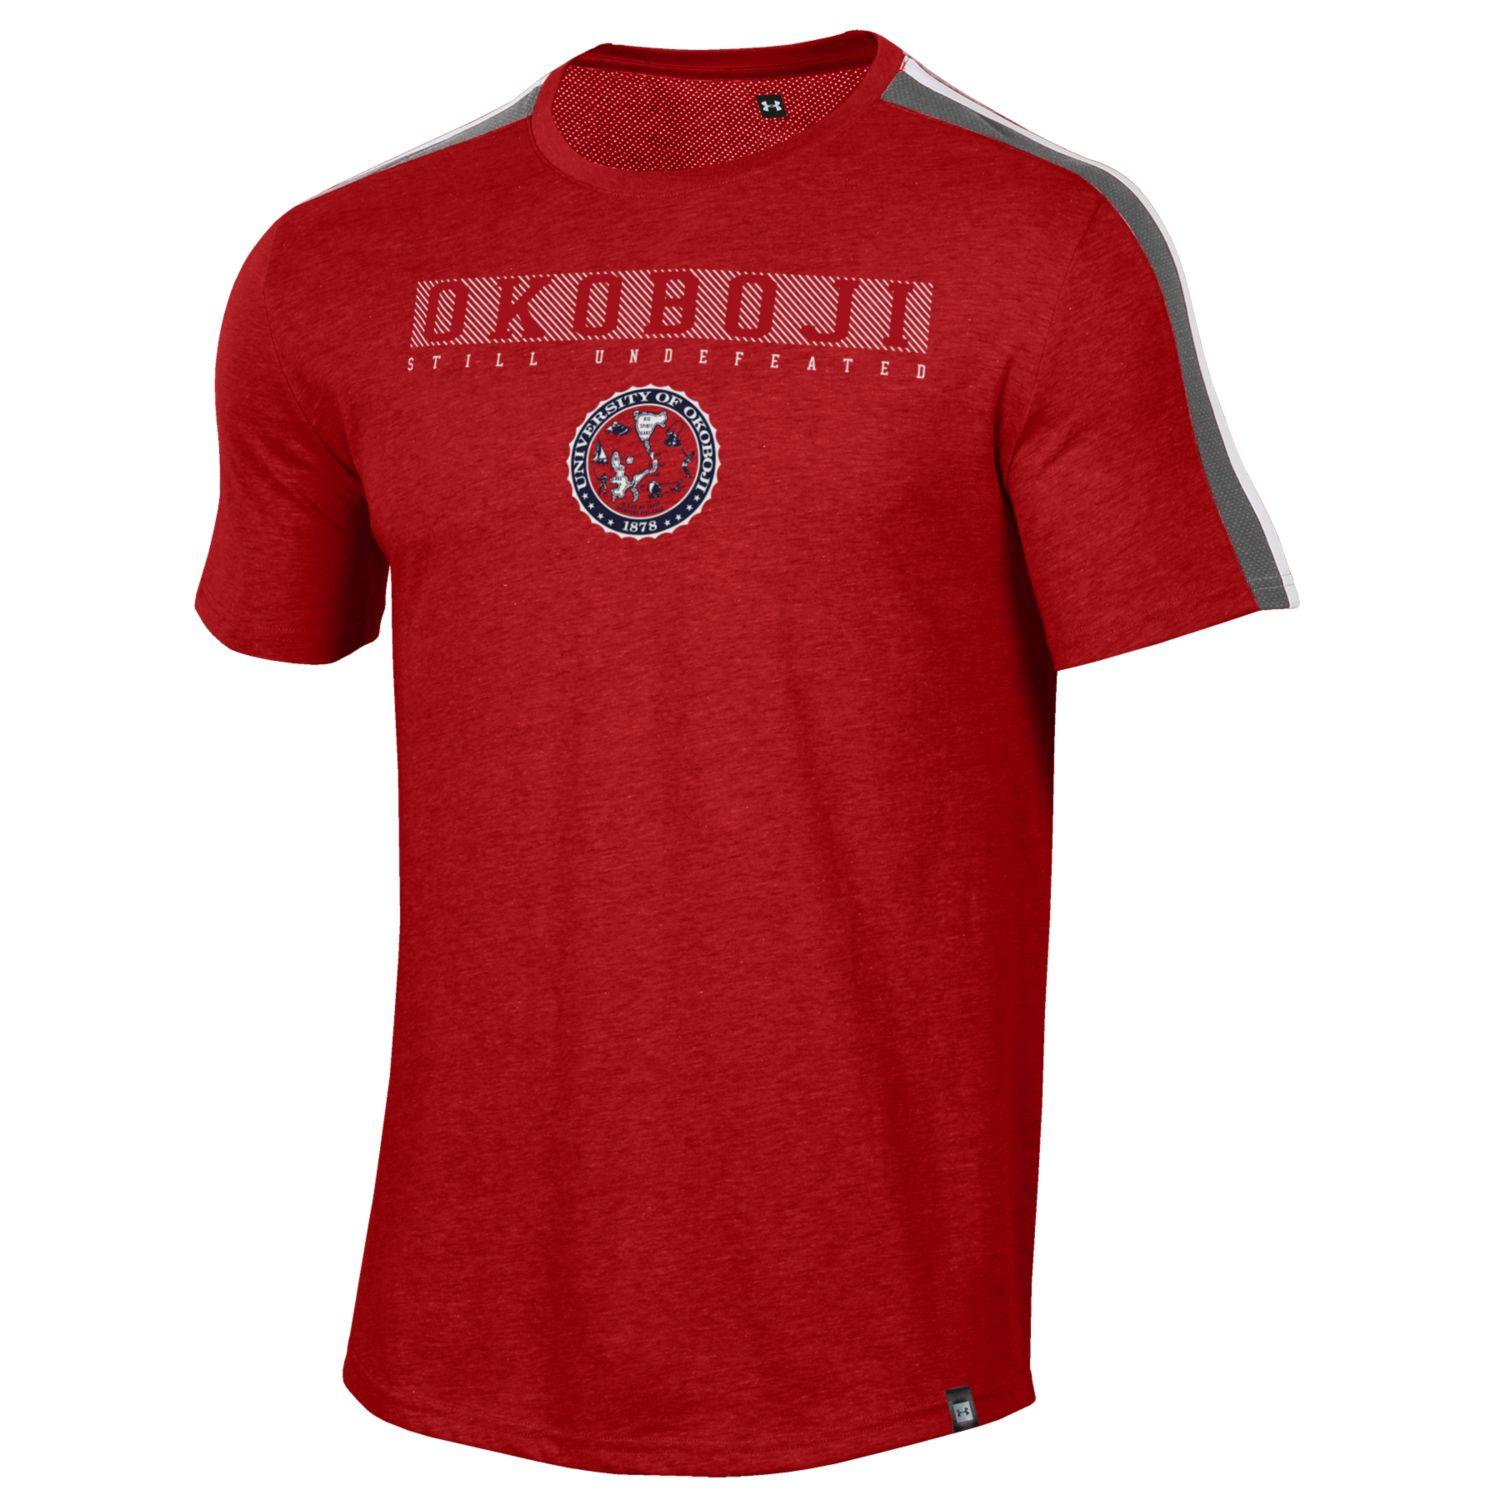 Okoboji Training Camp Short Sleeve Tee - Flawless Red